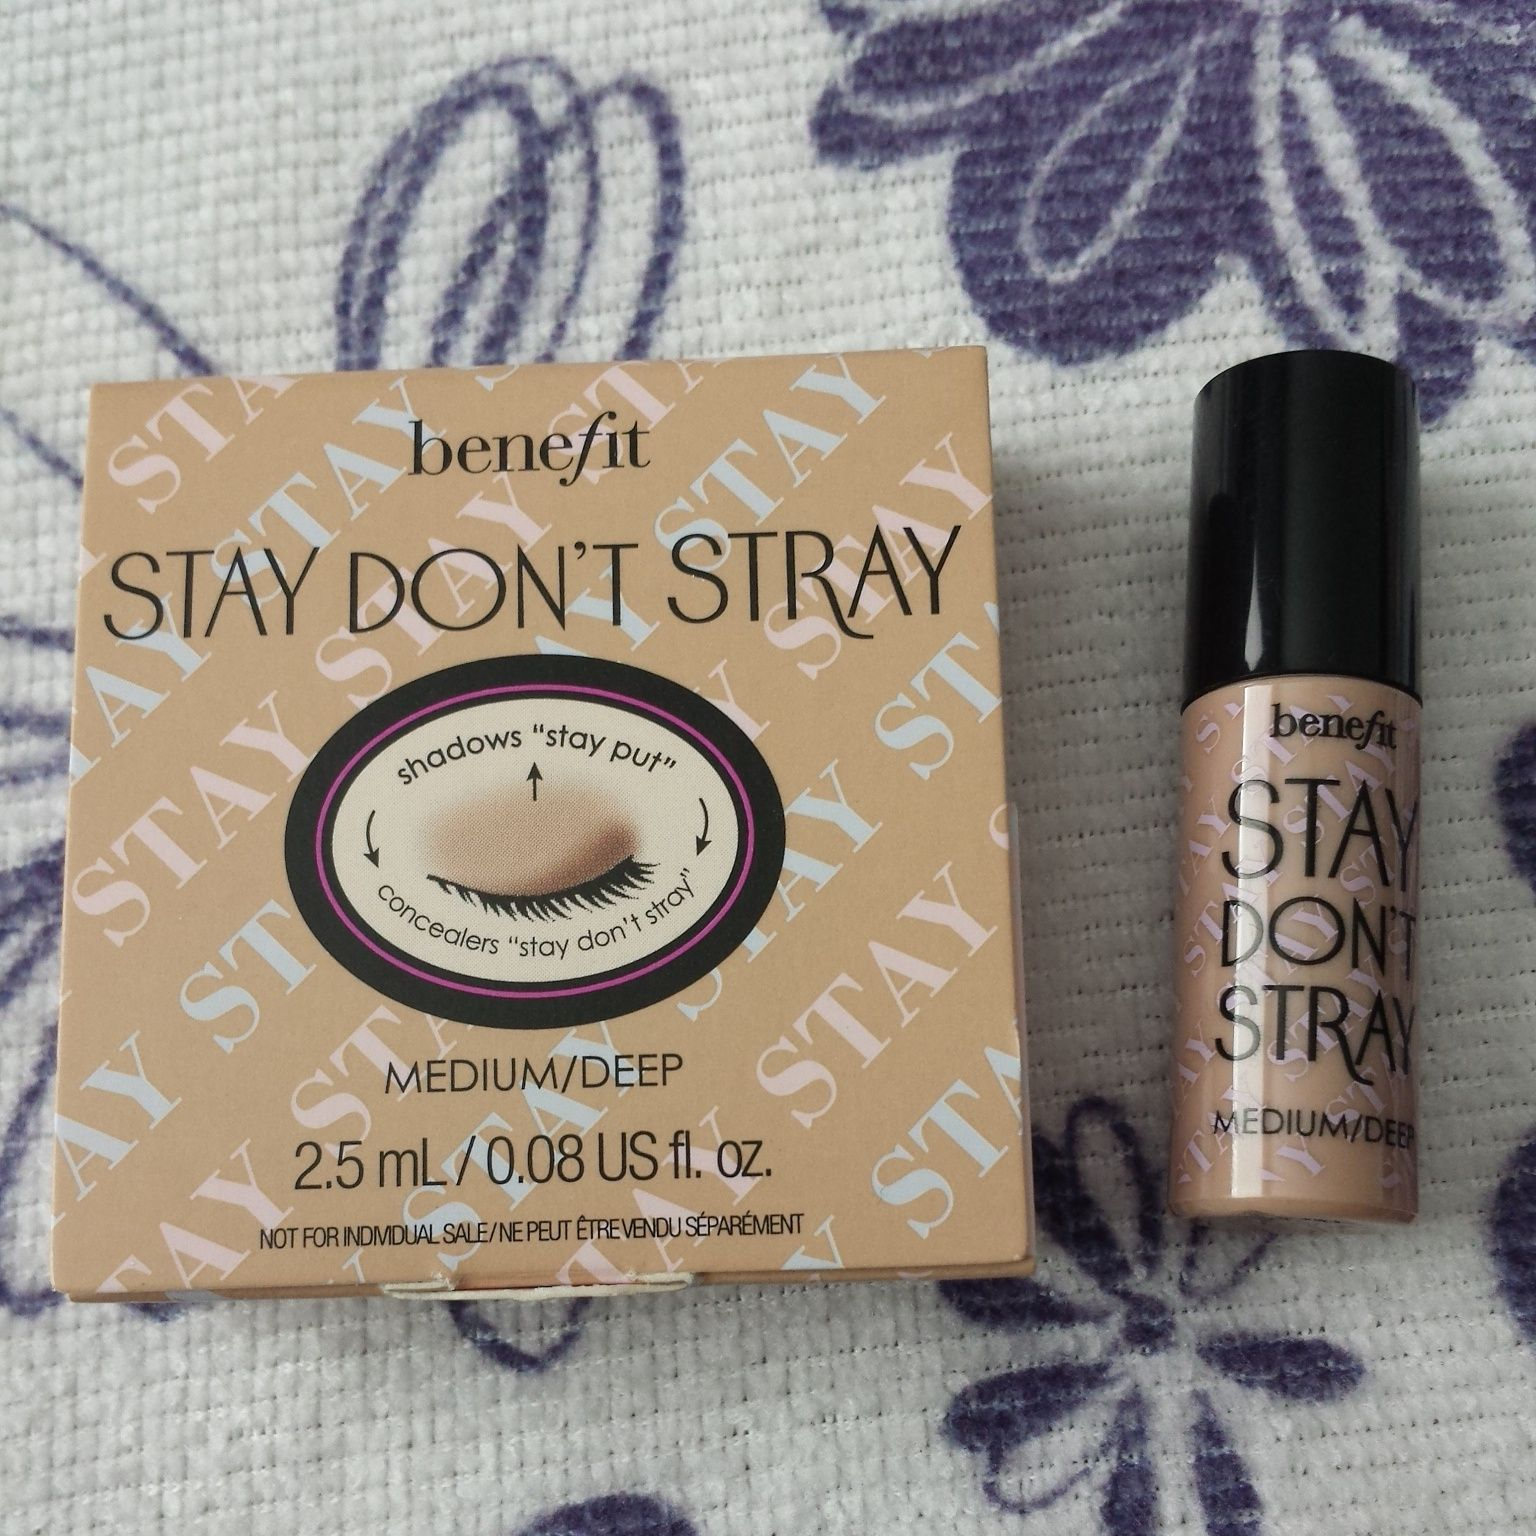 Benefit Stay Don't Stray Primer in Light/Medium Nail